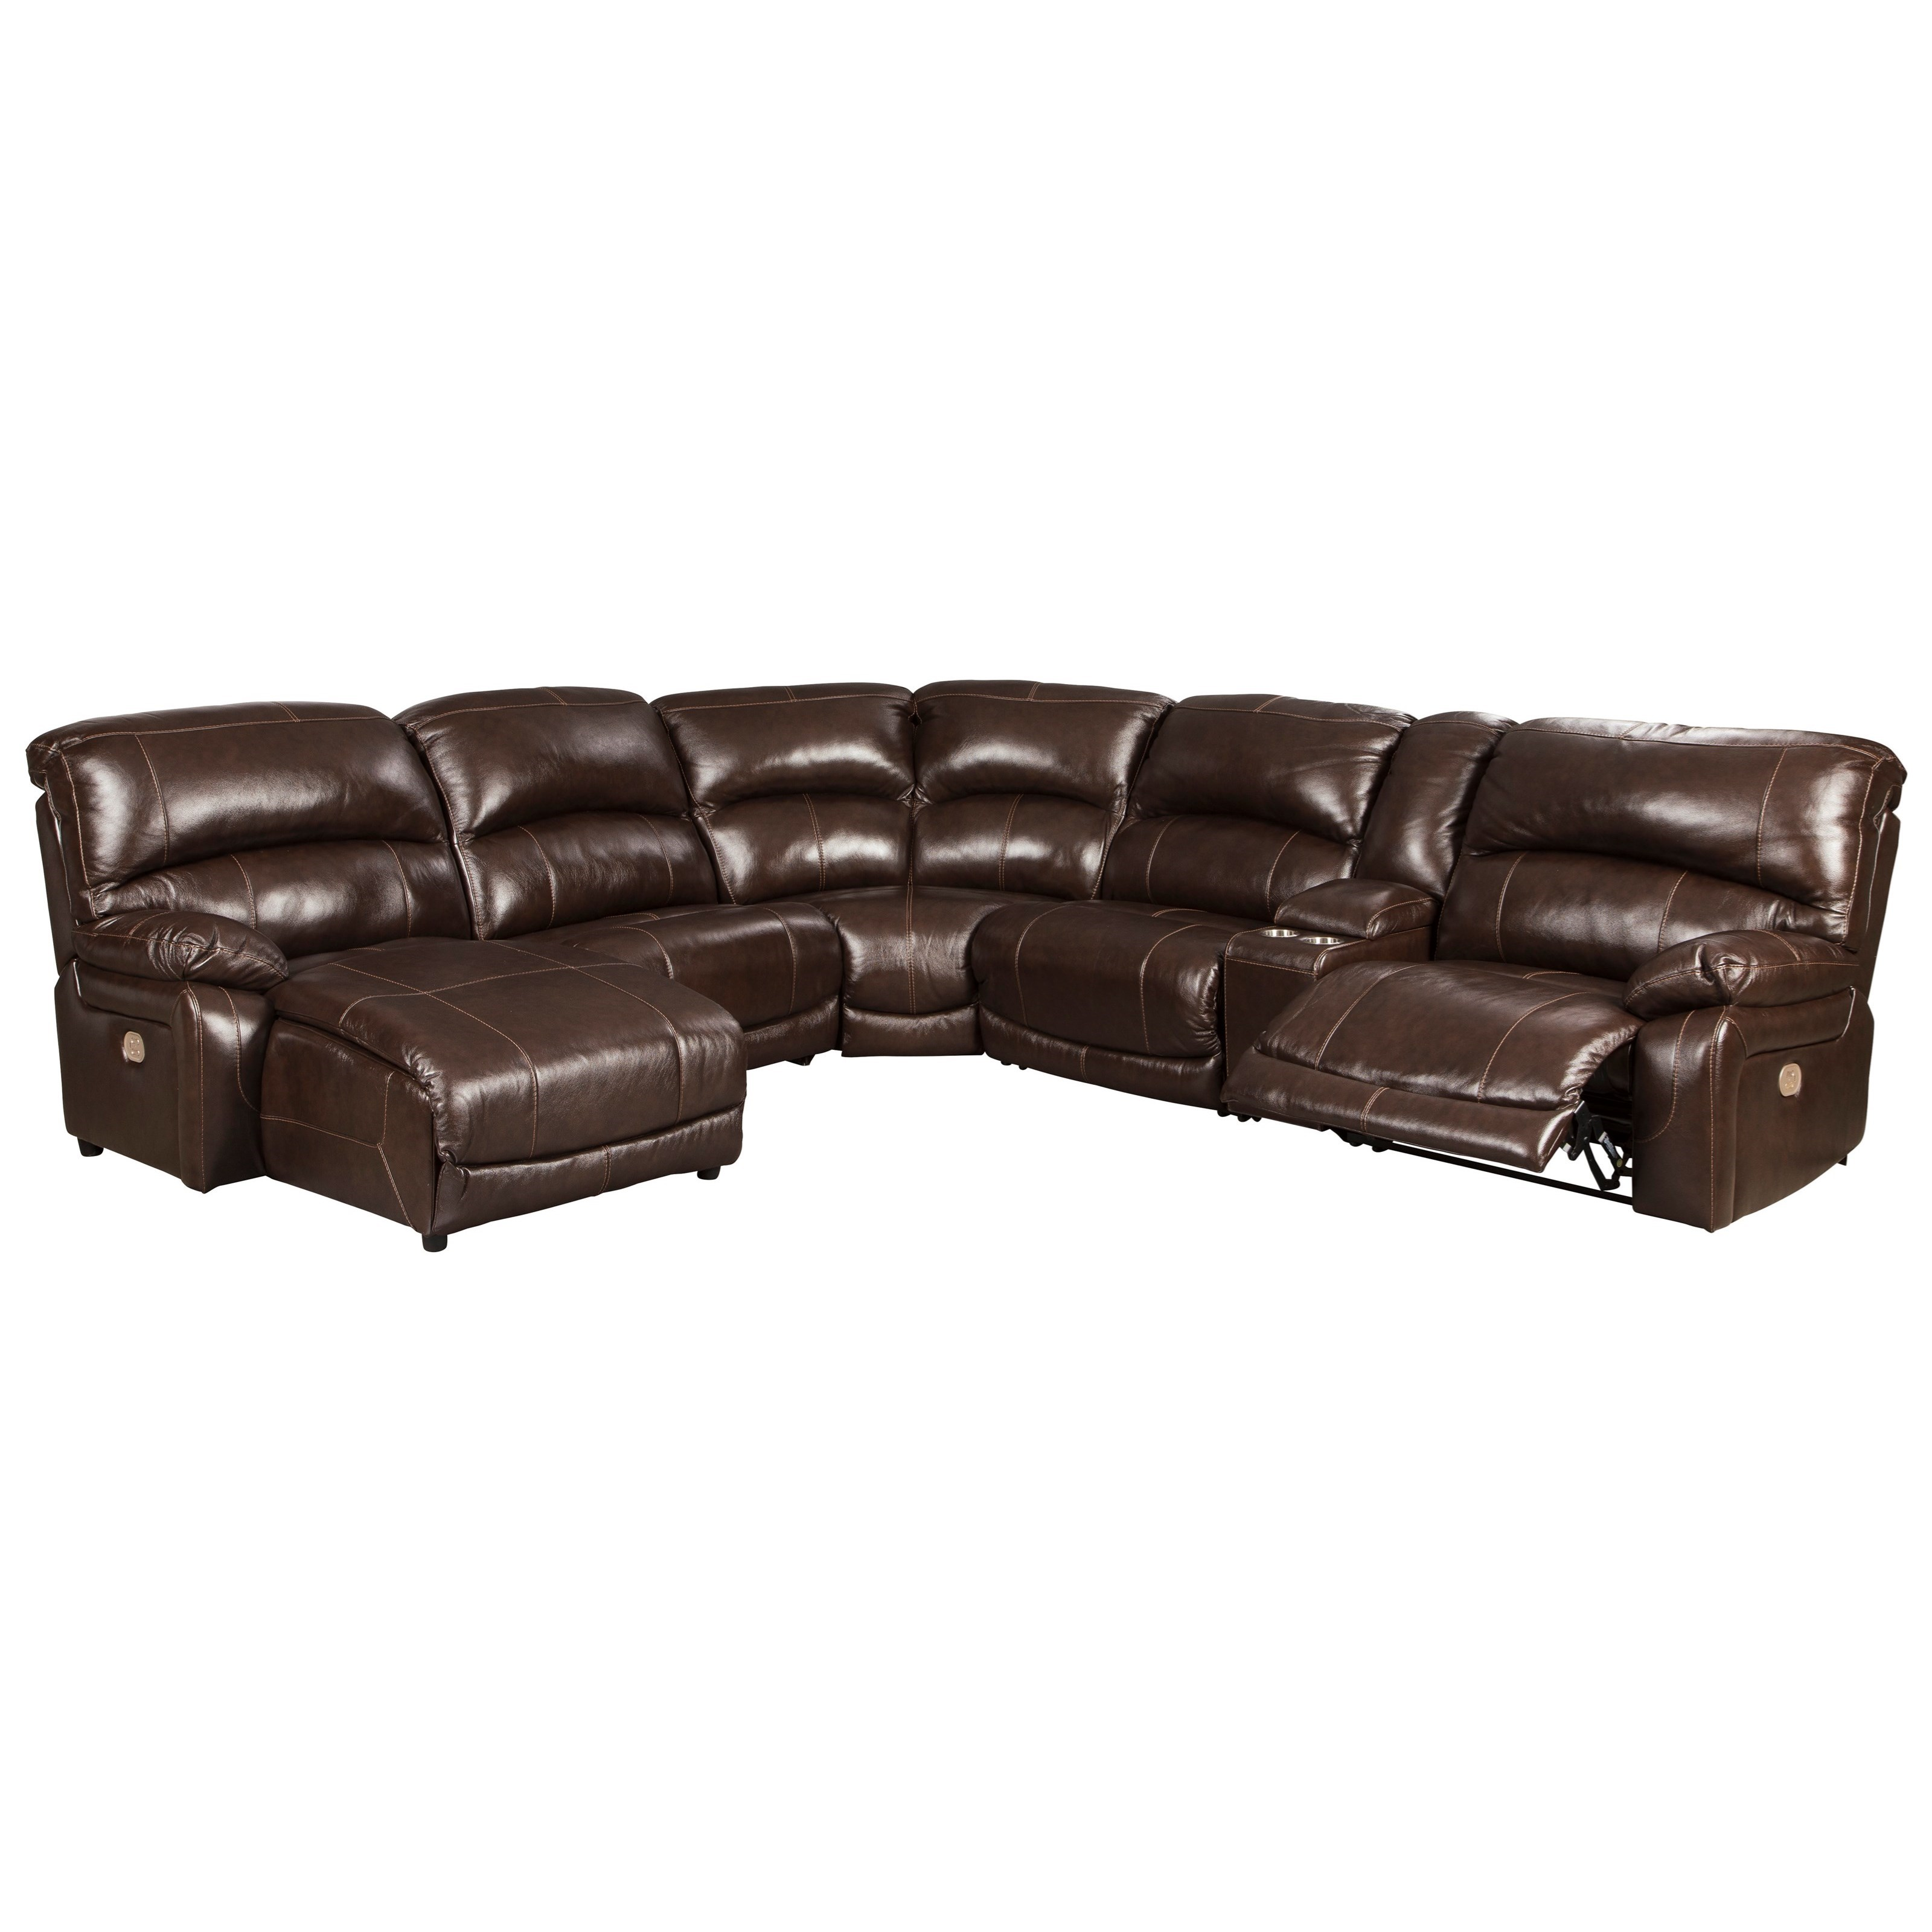 Hallstrung 6-Piece Reclining Sectional with Chaise by Signature Design by Ashley at Northeast Factory Direct